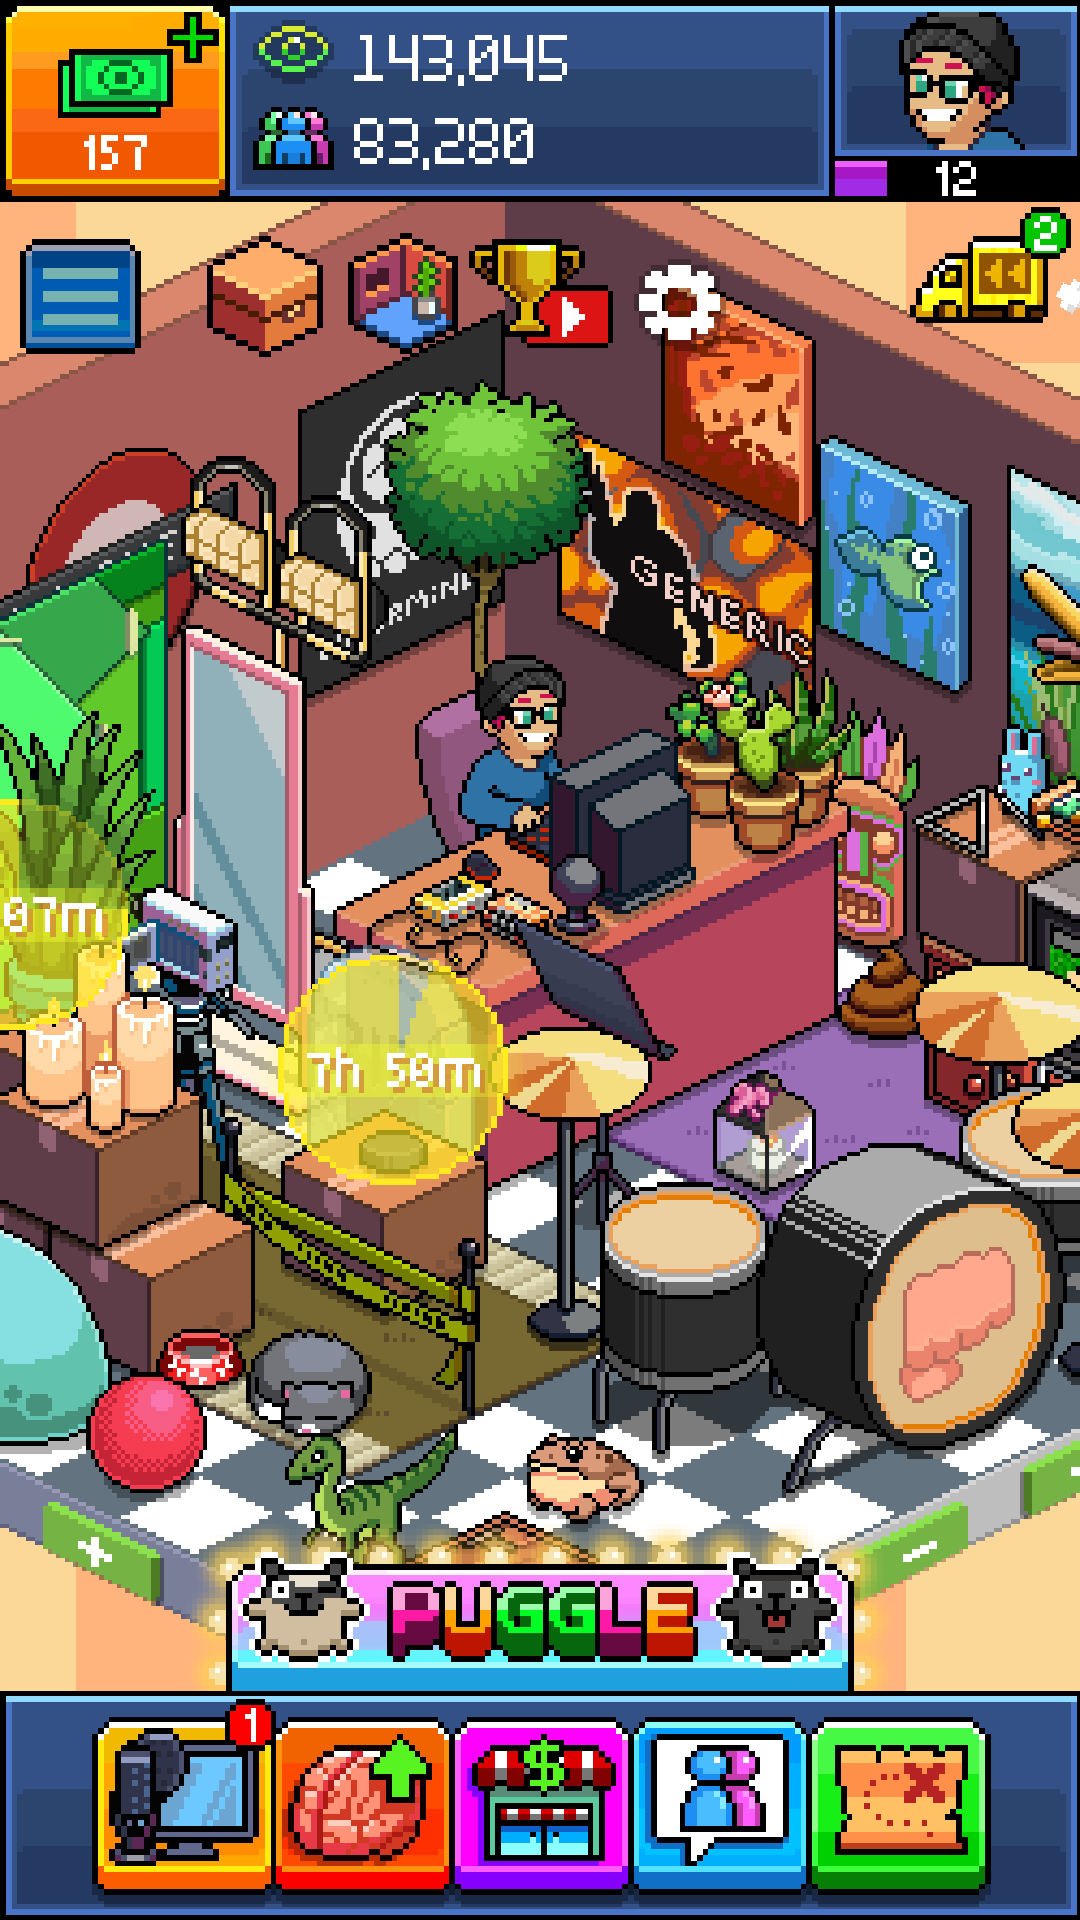 Pewdiepie tuber simulator (mod, unlimited money) 1. 12. 1 apk youtube.